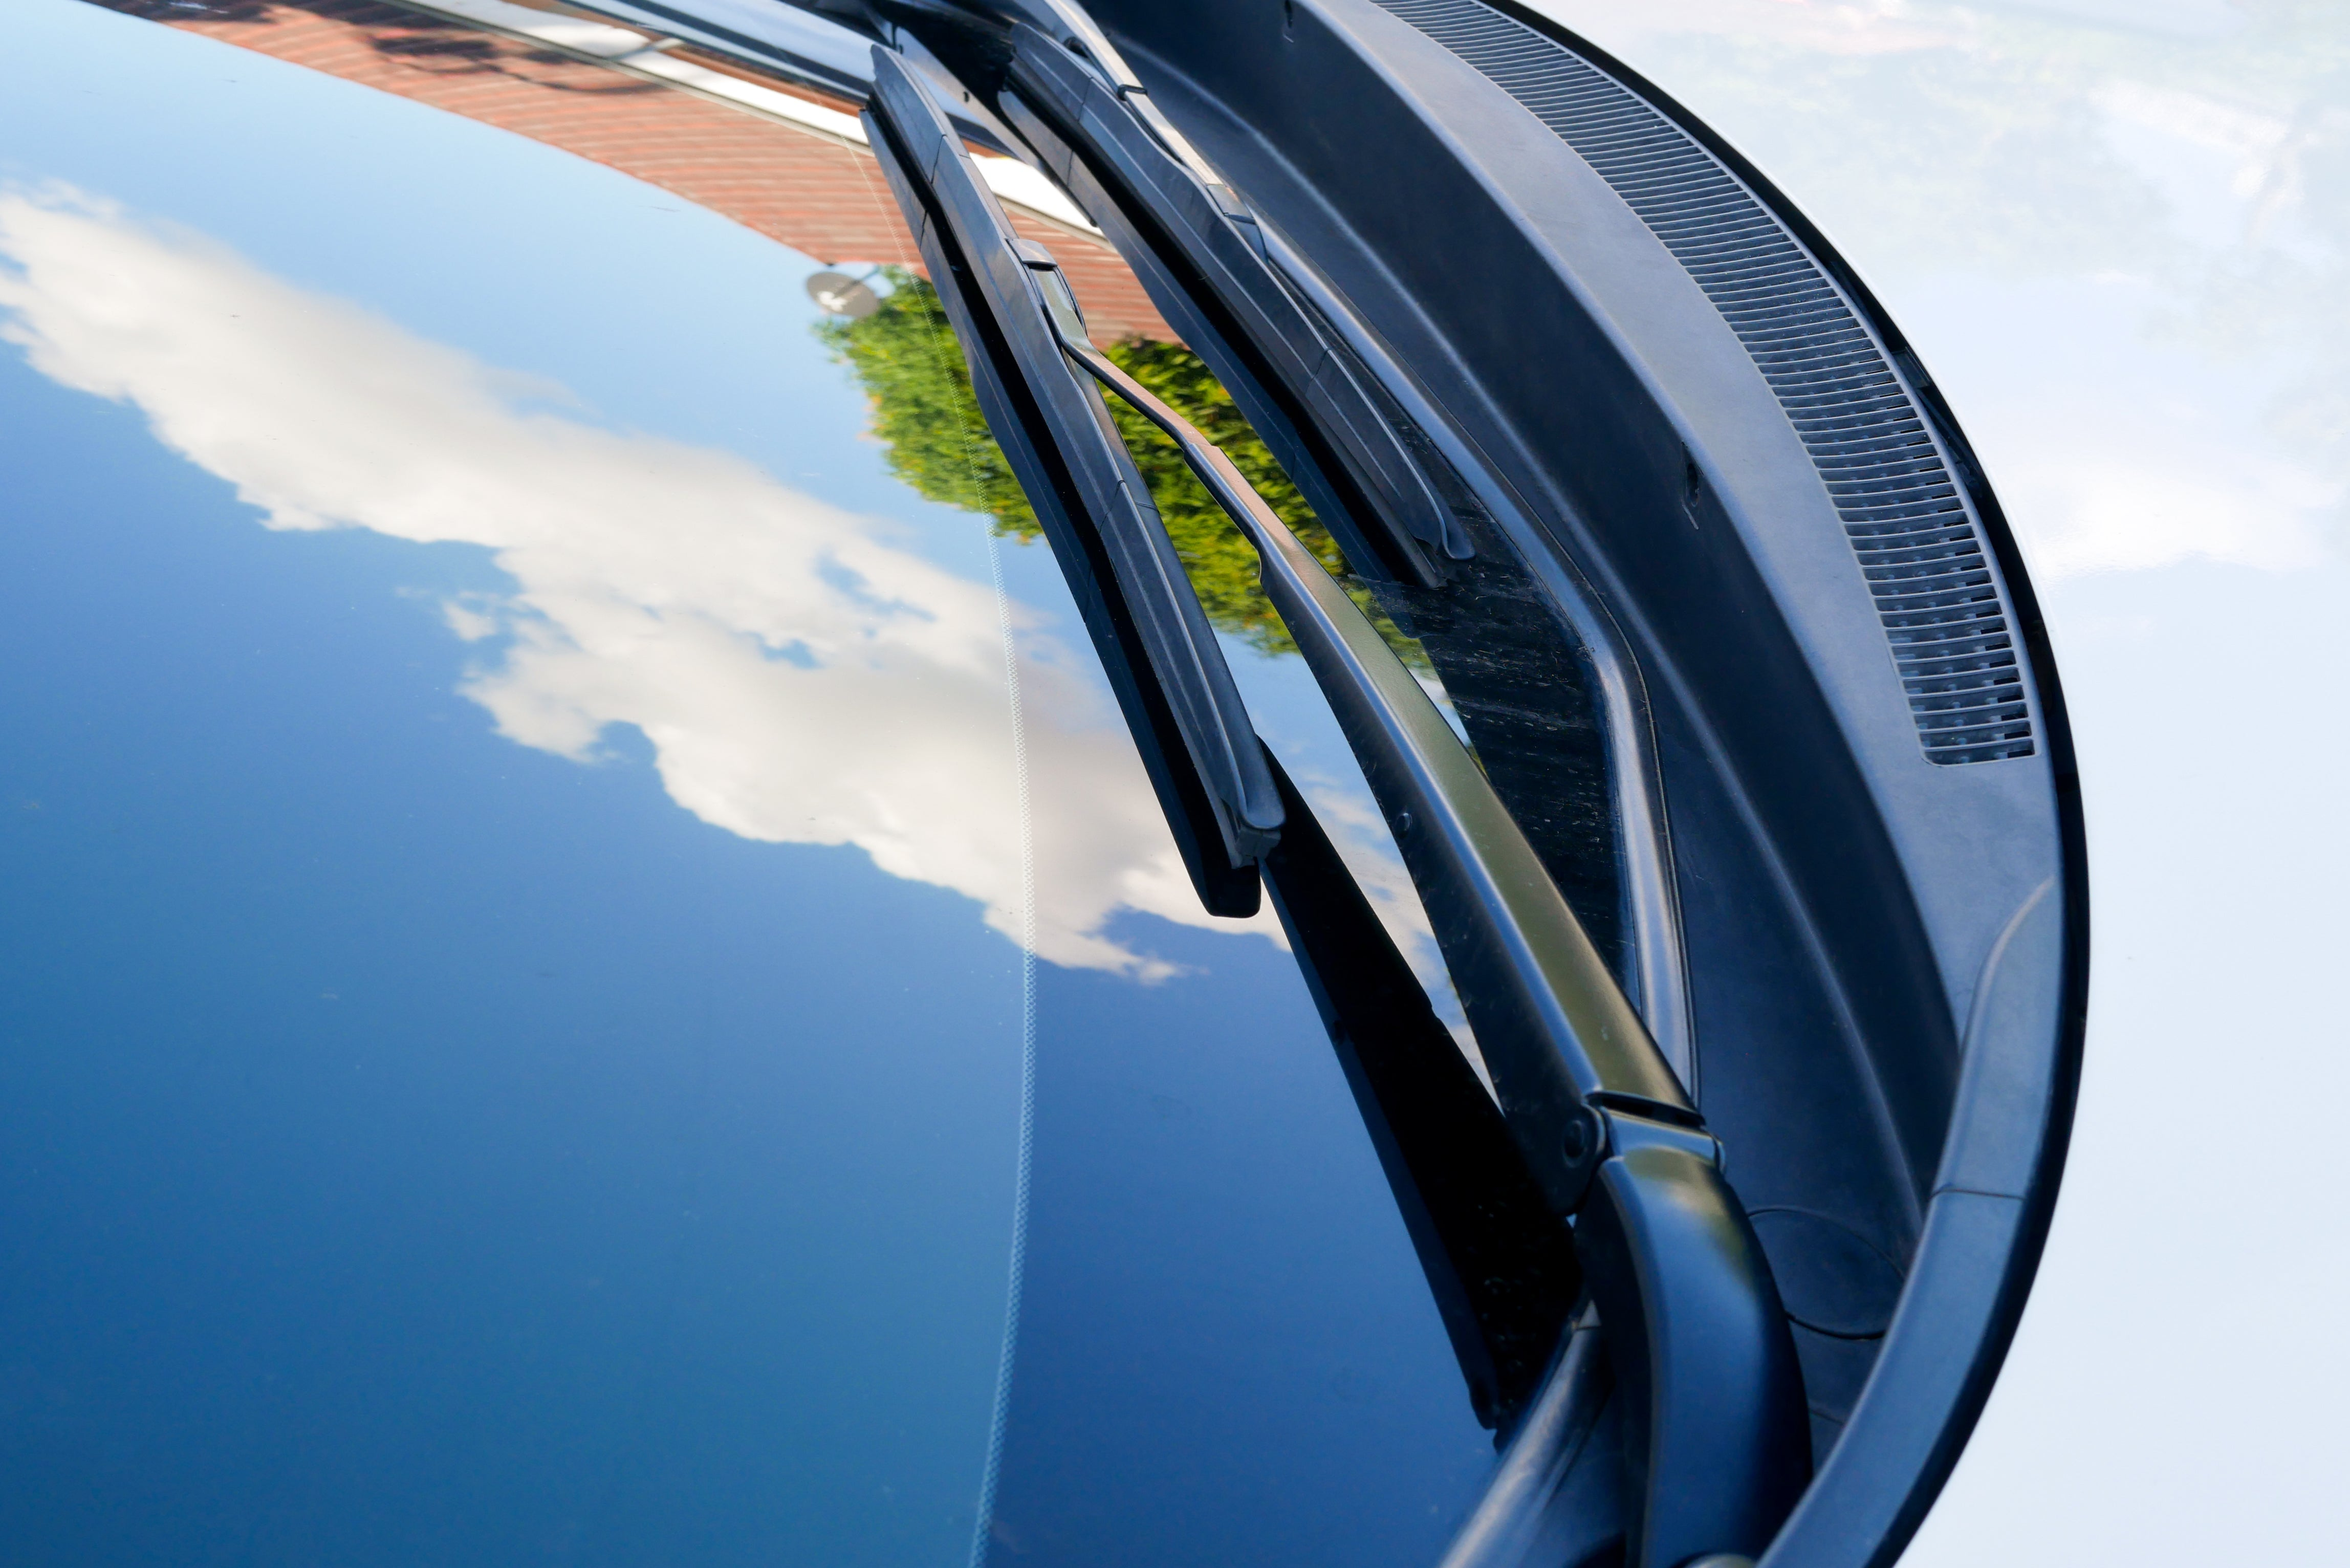 Close up of a car's windshield that is so clean the sky and clouds are perfectly reflected in it.